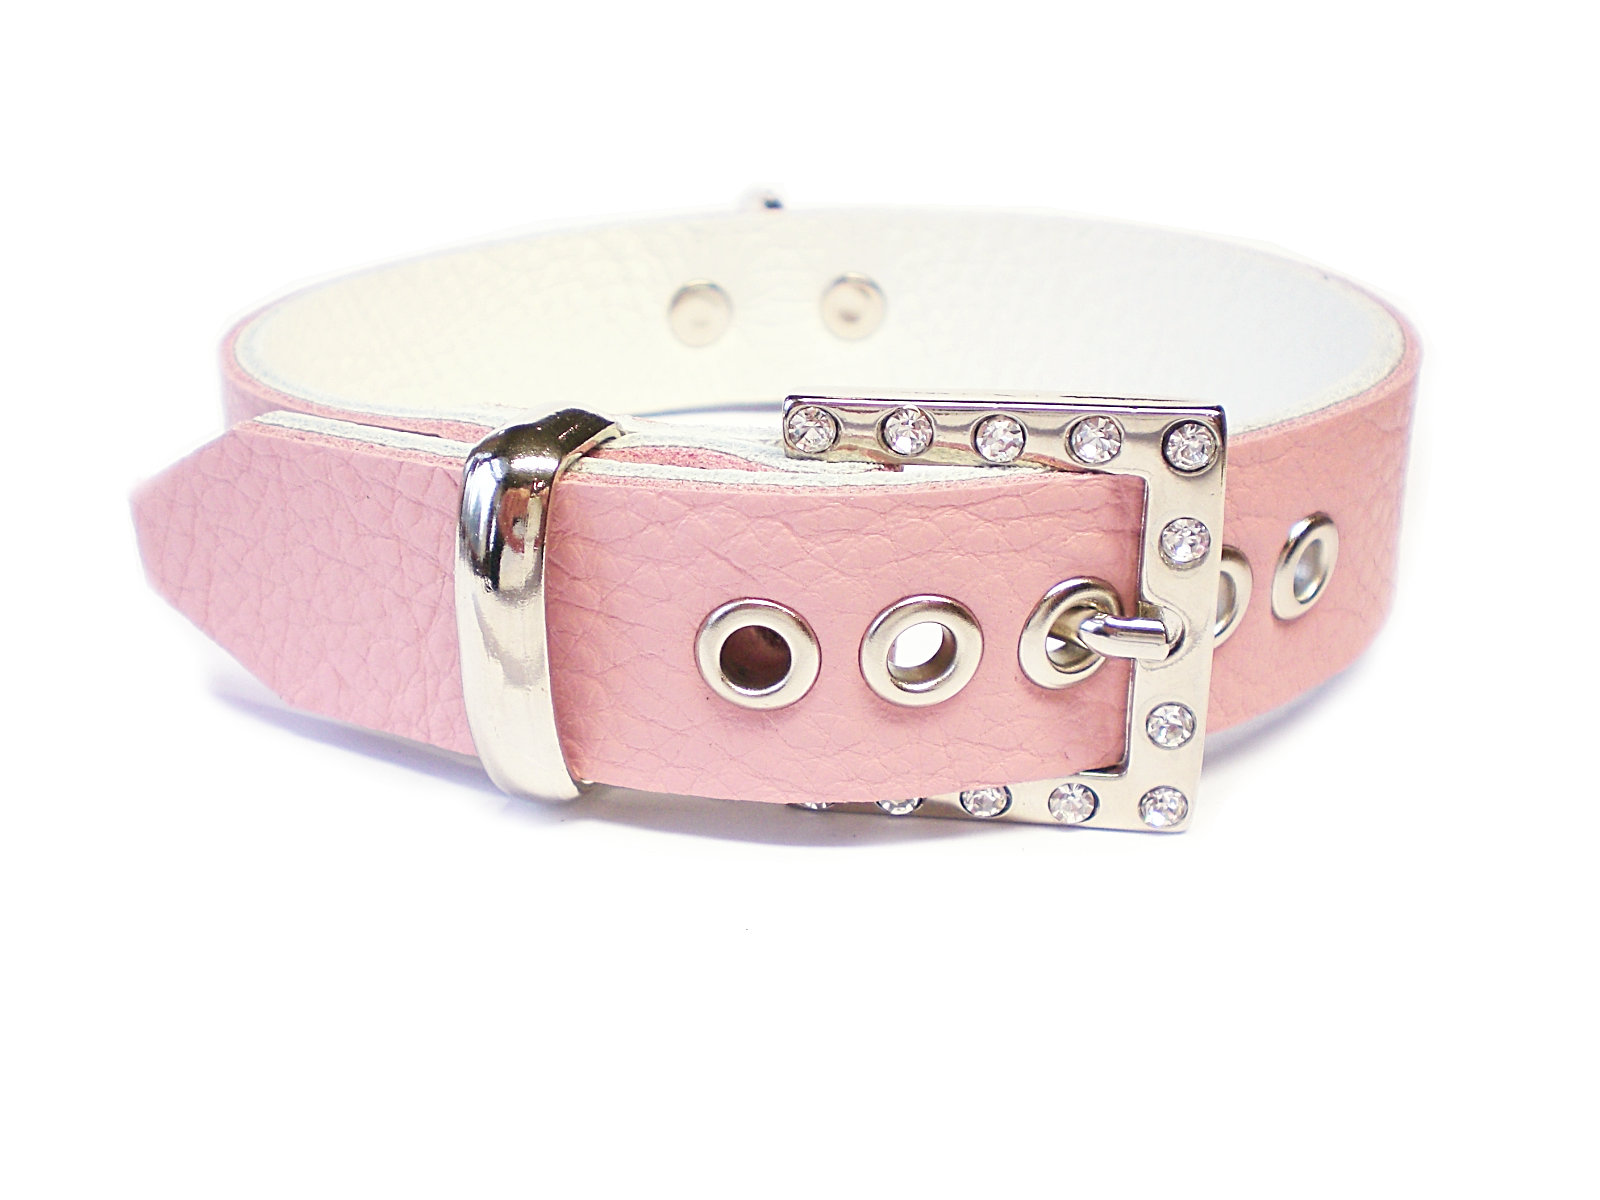 PKWz-1in-rhinestone-buckle.jpg